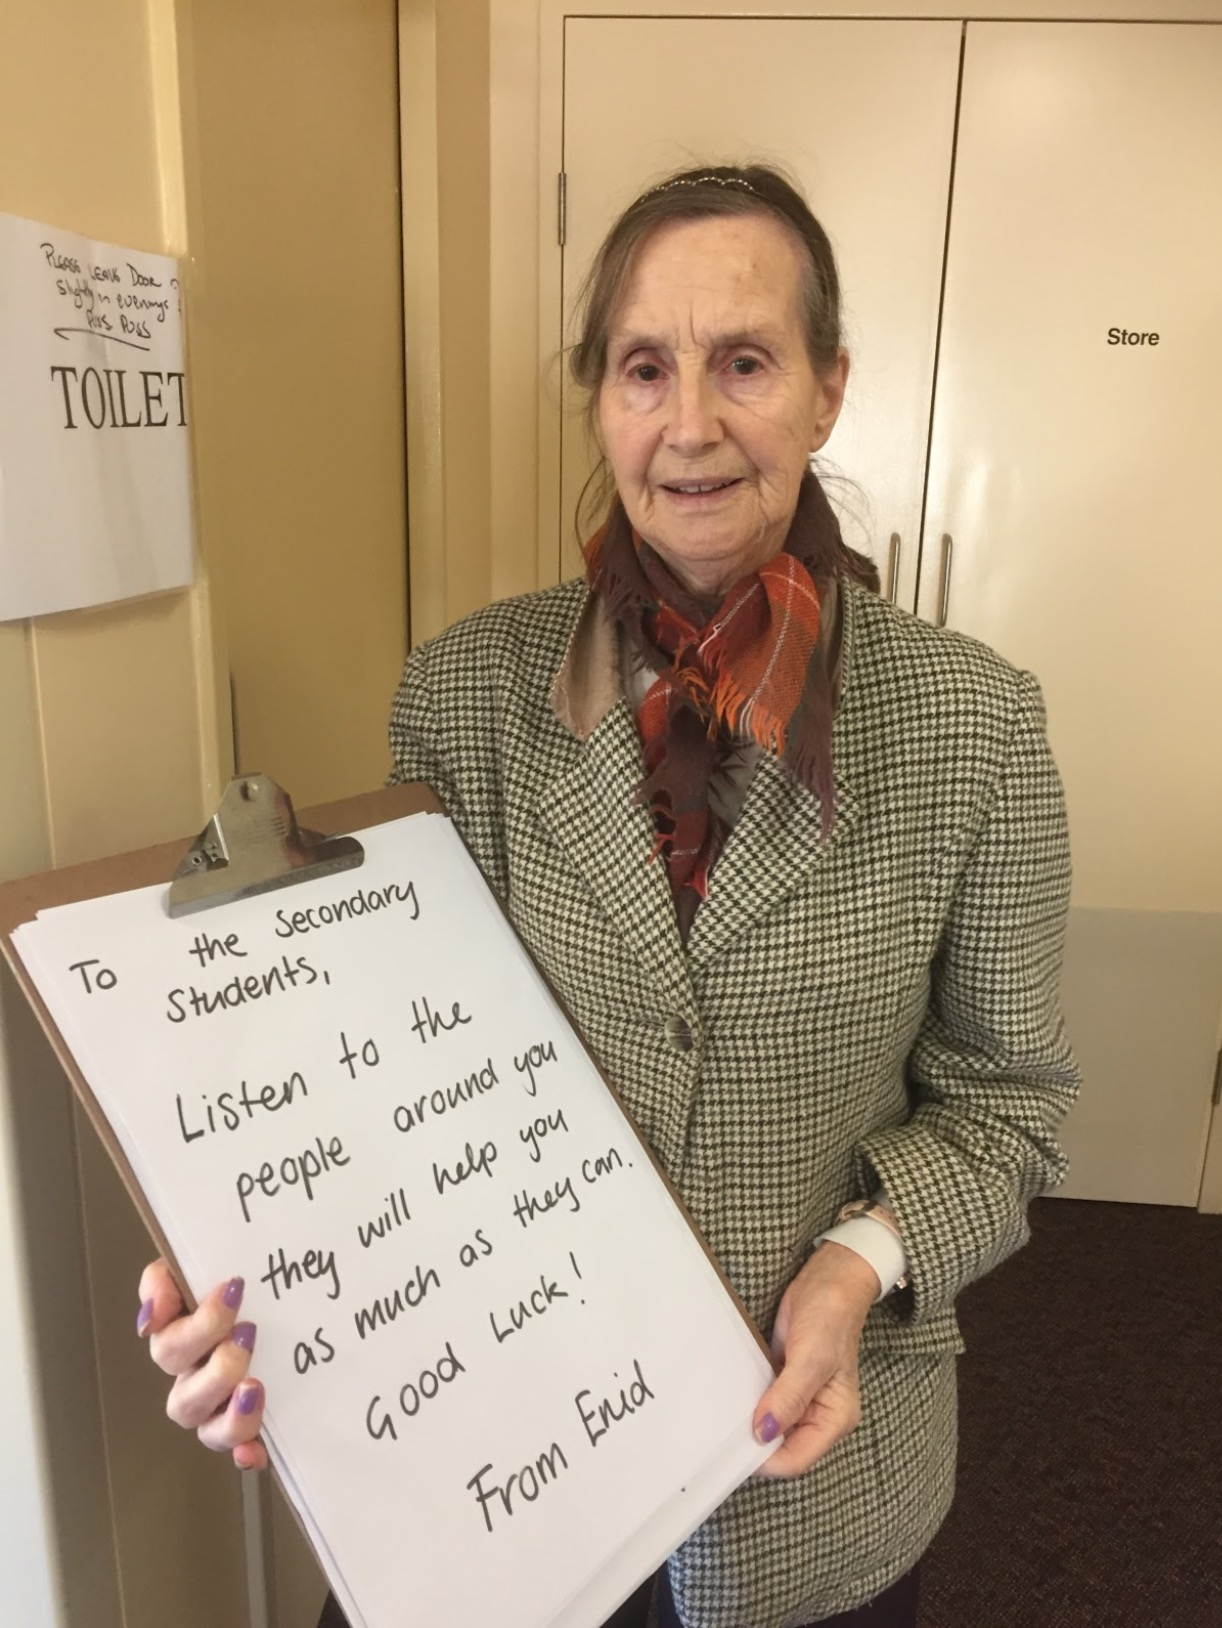 """Enid, a resident, holds up a large clipboard with a hand written message which reads: """"To the Secondary Students, Listen to the people around you, they will help you as much as they can. Good luck! From Enid."""""""